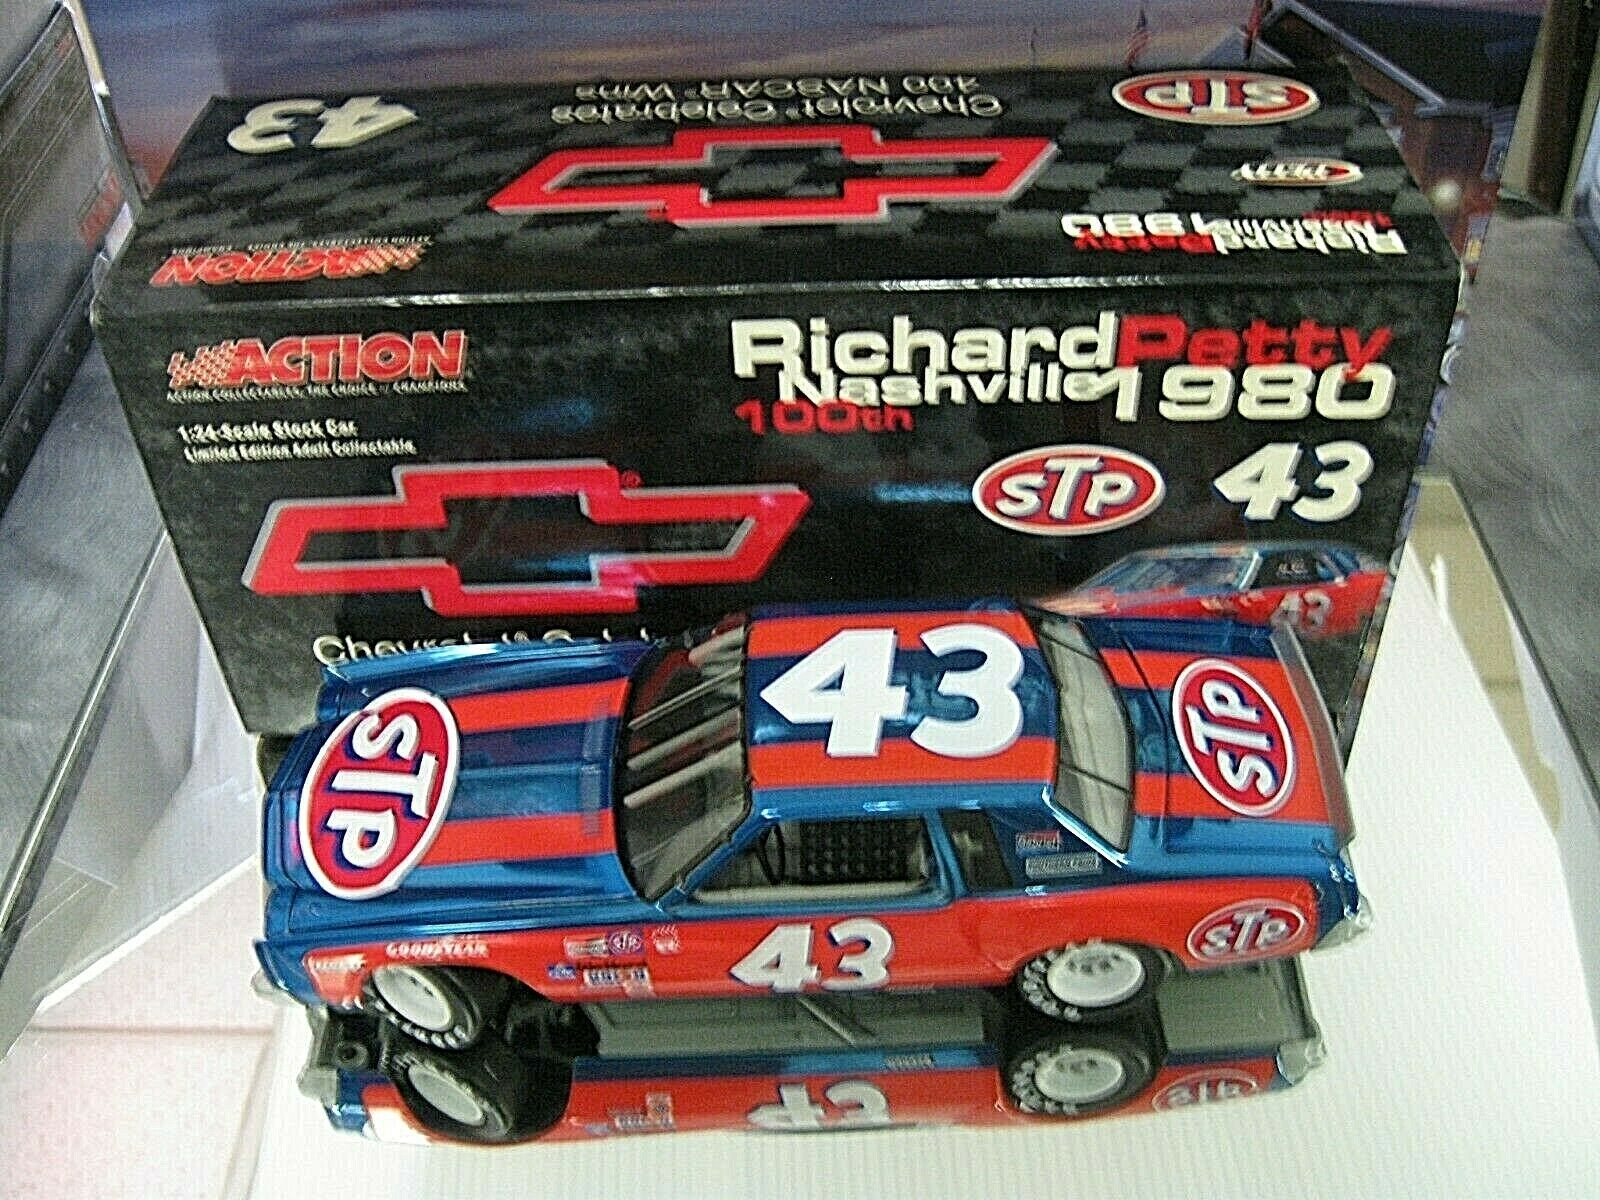 RARE  2004 RELEASE 1980 RICHARD PETTY CHEVROLET 400 WINS NASHVILLE 100TH MONTE